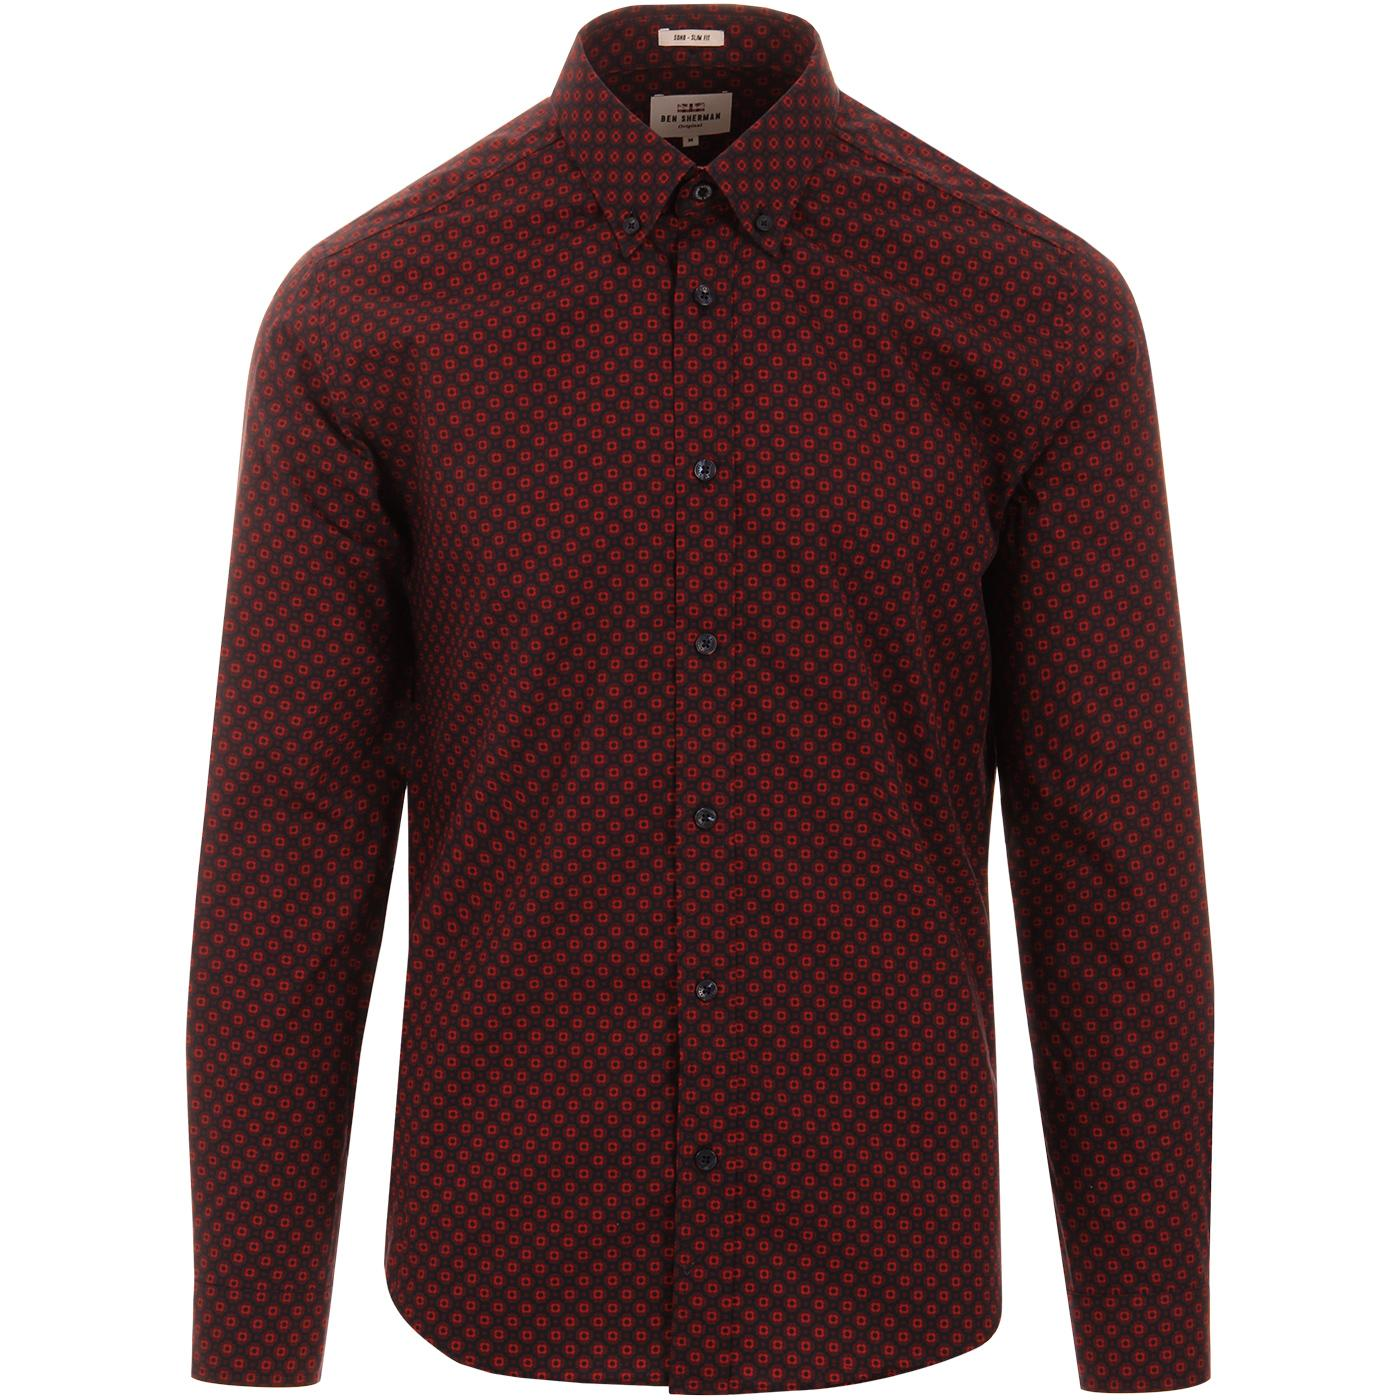 BEN SHERMAN Men's Retro Mod Geometric Print Shirt